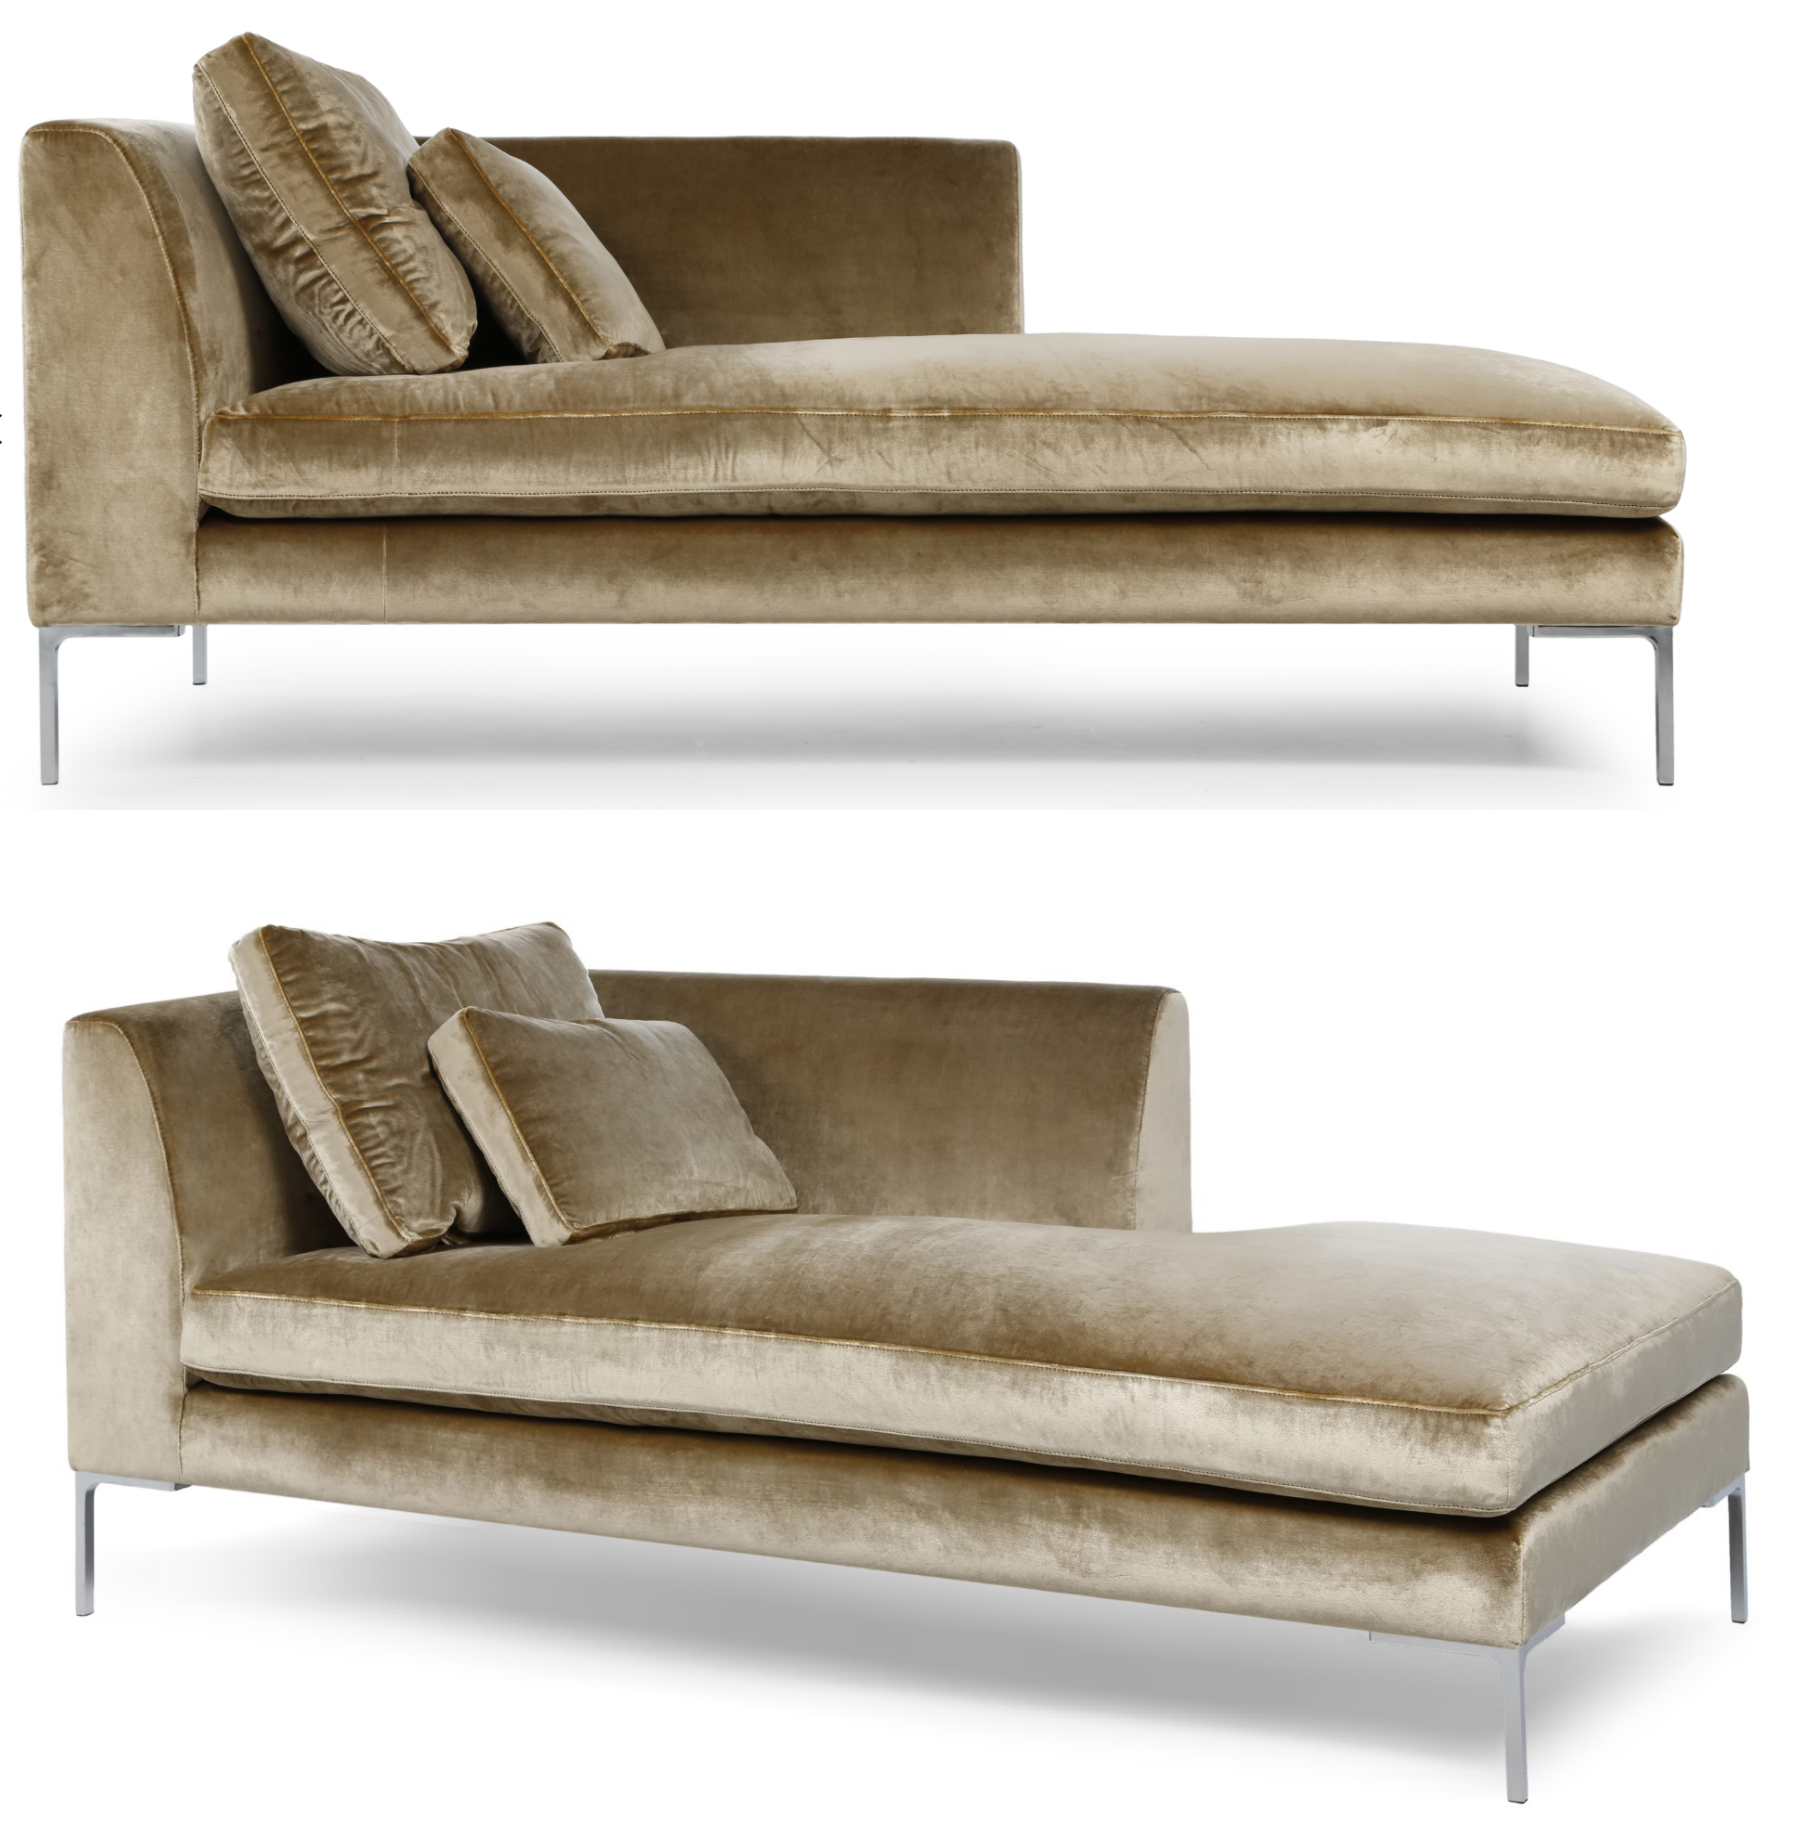 This Sleek And Sophisticated Chaise Longue Is One Of Our Bestselling Models And Well Suited To Modern Interi Modern Chaise Lounge Minimalist Sofa Chaise Lounge